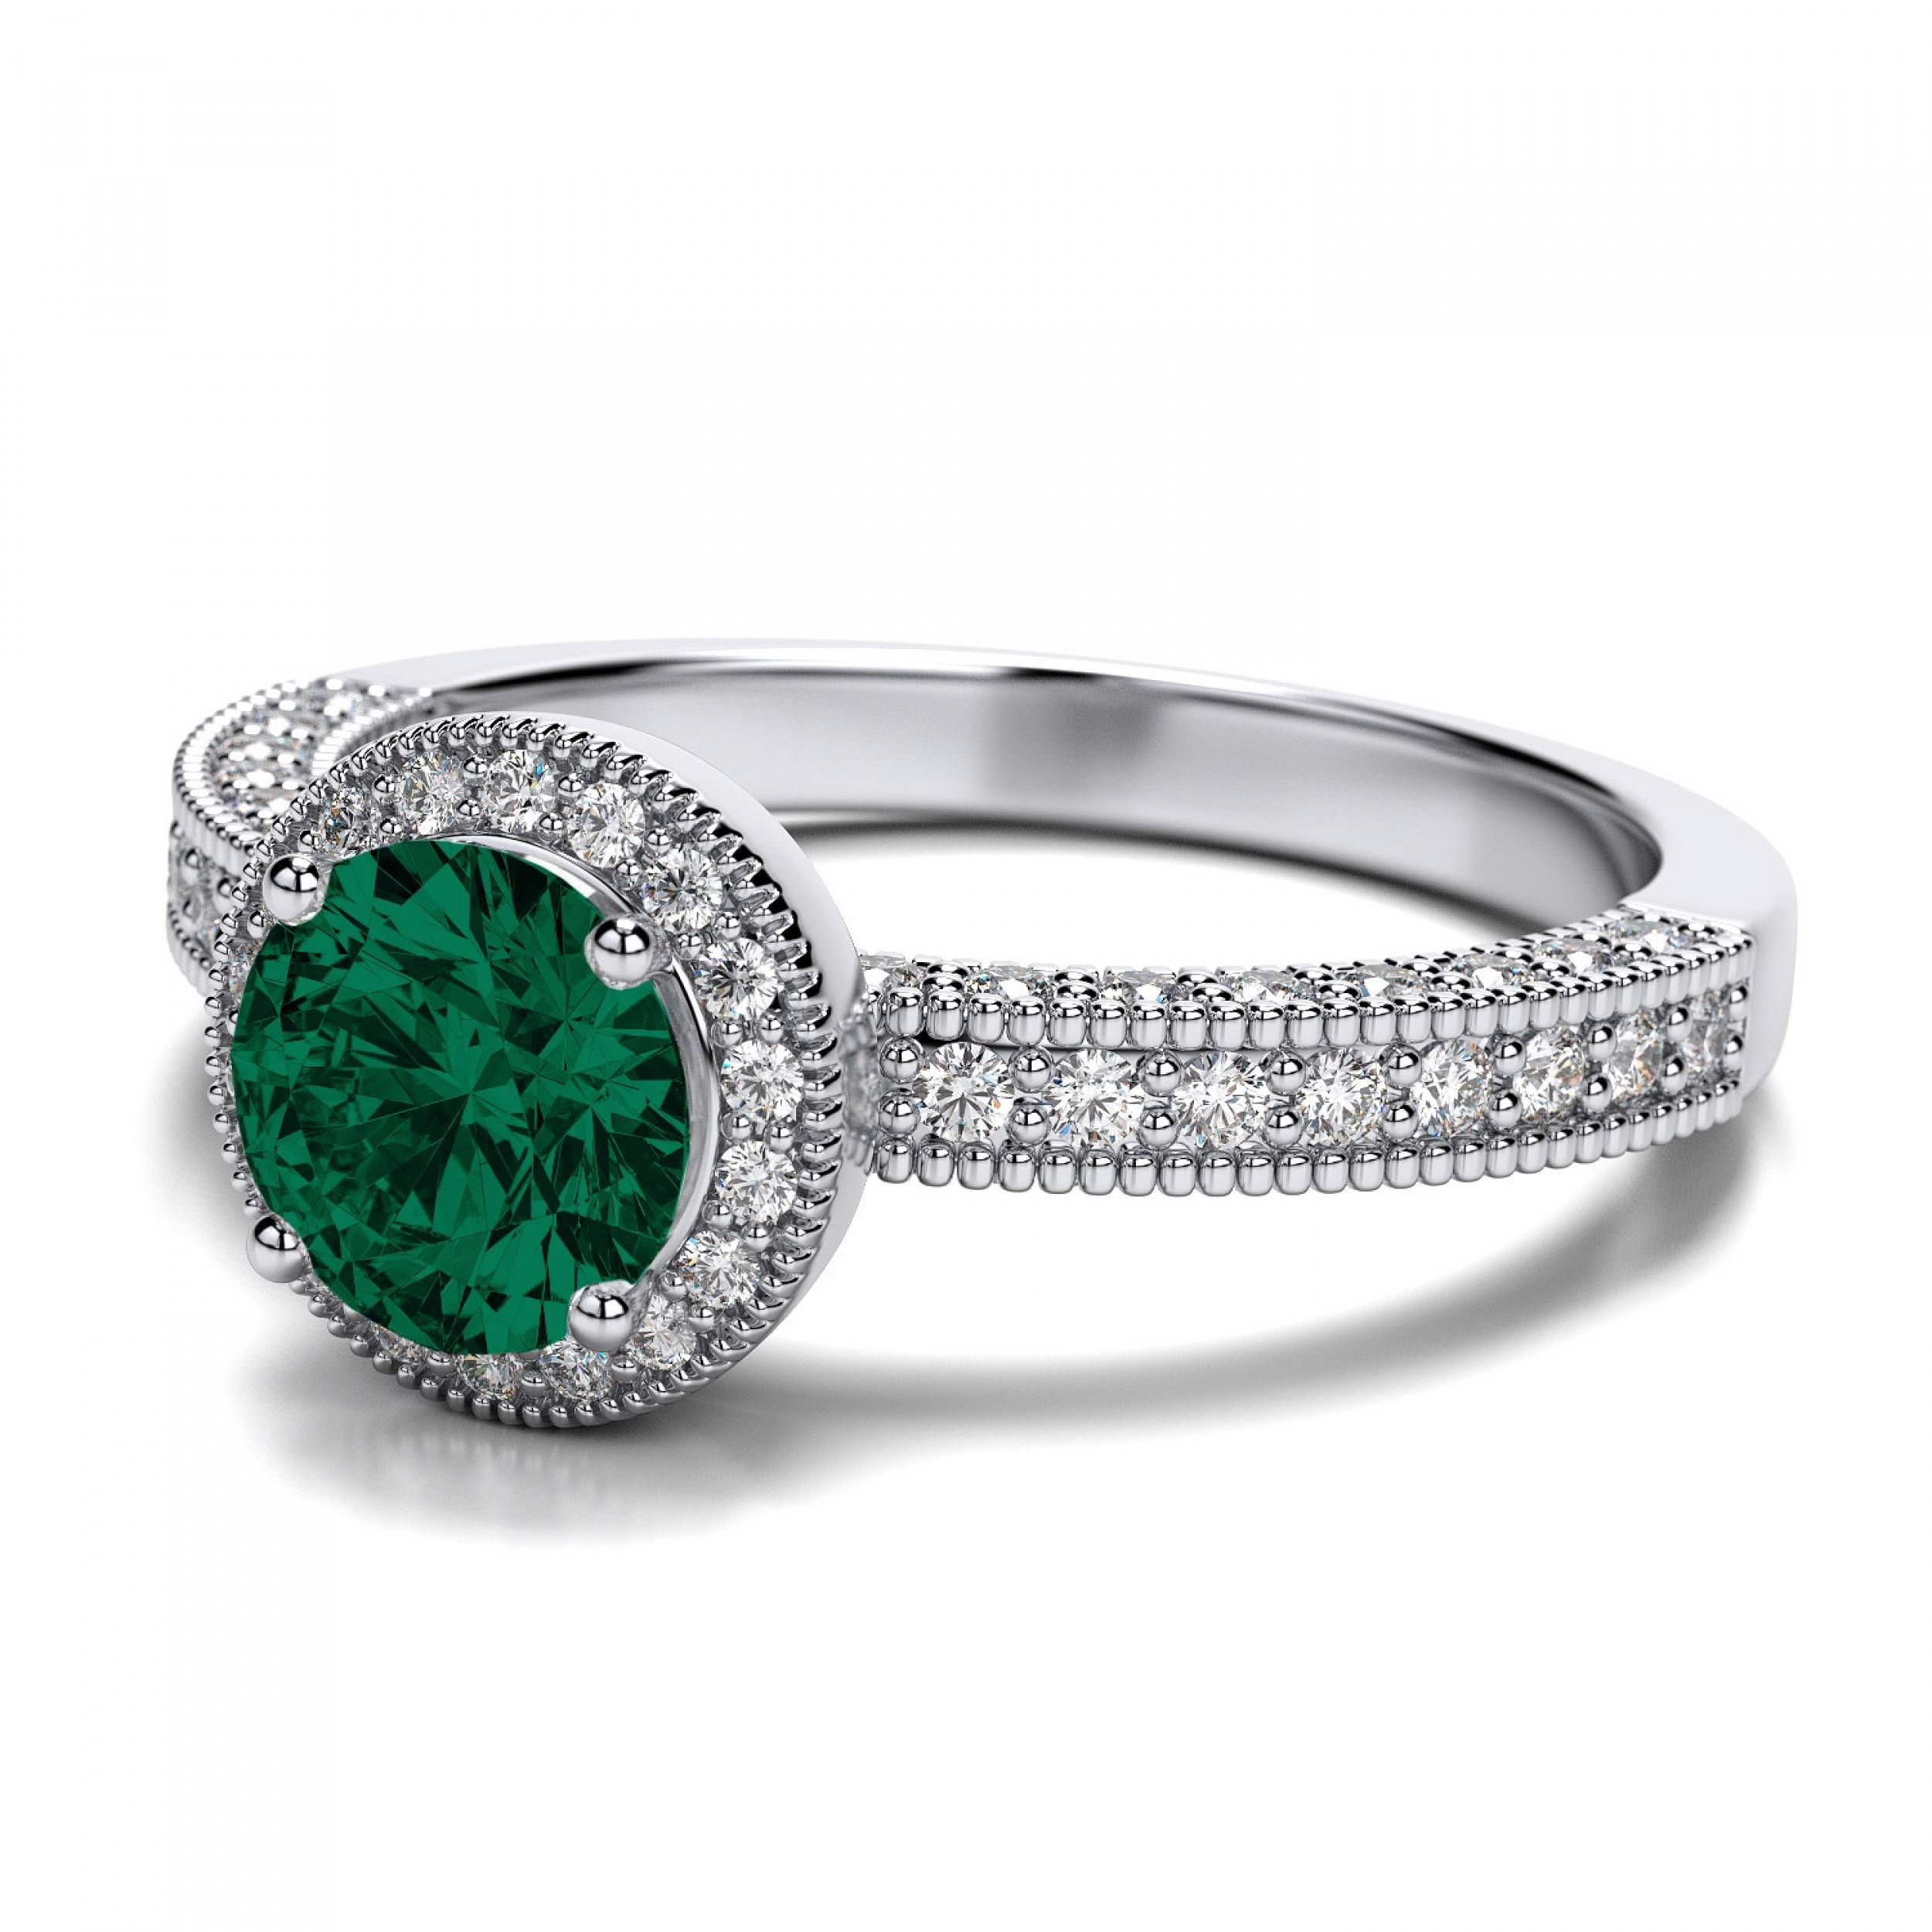 Victorian Vintage Round Emerald Engagement Ring In 14K White Gold Regarding White Gold Emerald Engagement Rings (Gallery 3 of 15)